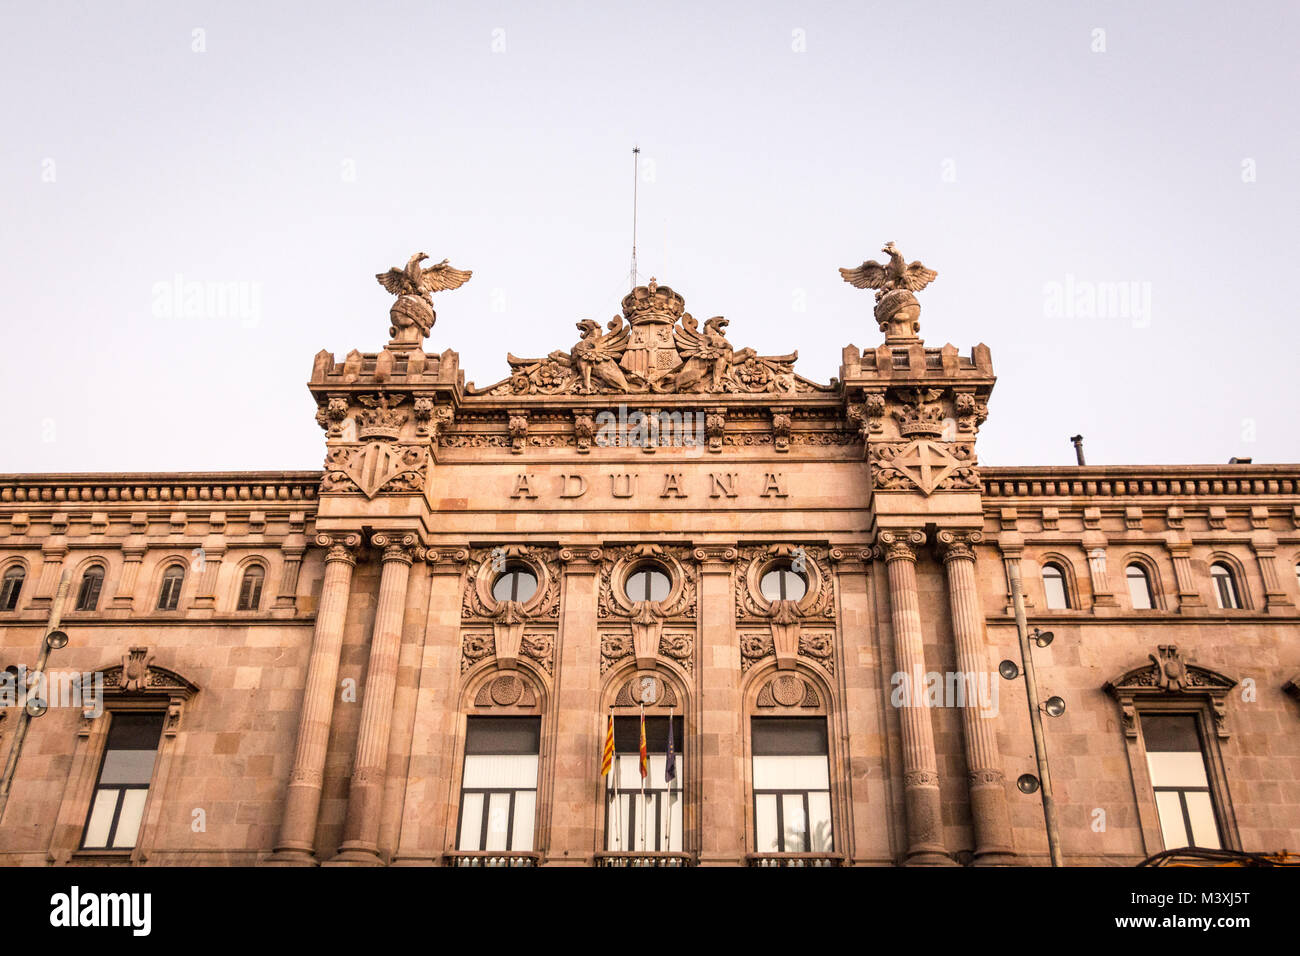 Facade of neoclassical building Aduana in the Square of the Gate of Peace at Port Vell (Barcelona, Catalonia, Spain). - Stock Image